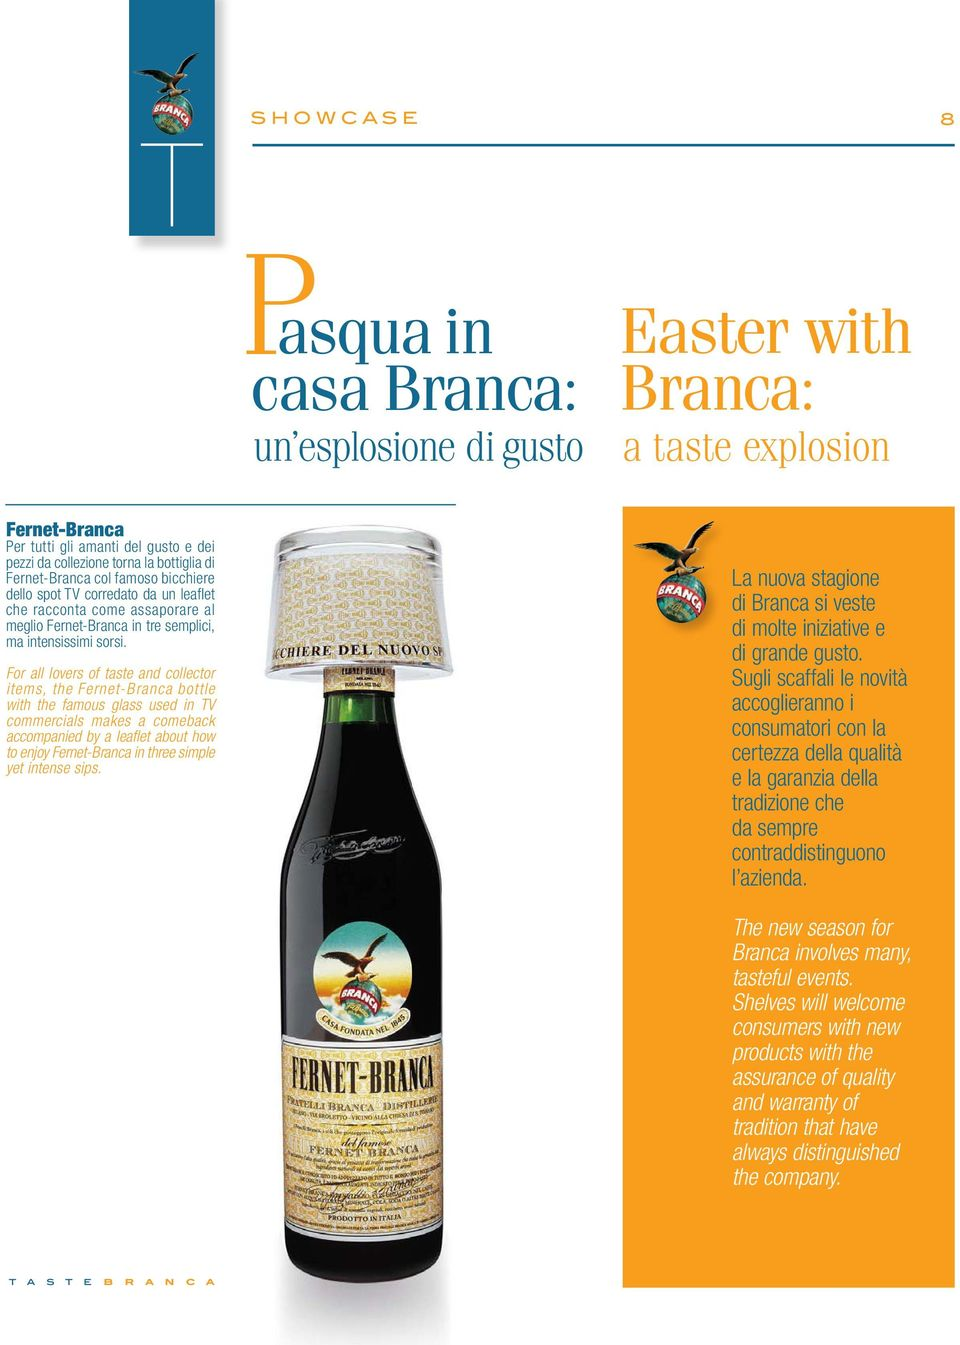 For all lovers of taste and collector items, the Fernet-Branca bottle with the famous glass used in TV commercials makes a comeback accompanied by a leaflet about how to enjoy Fernet-Branca in three